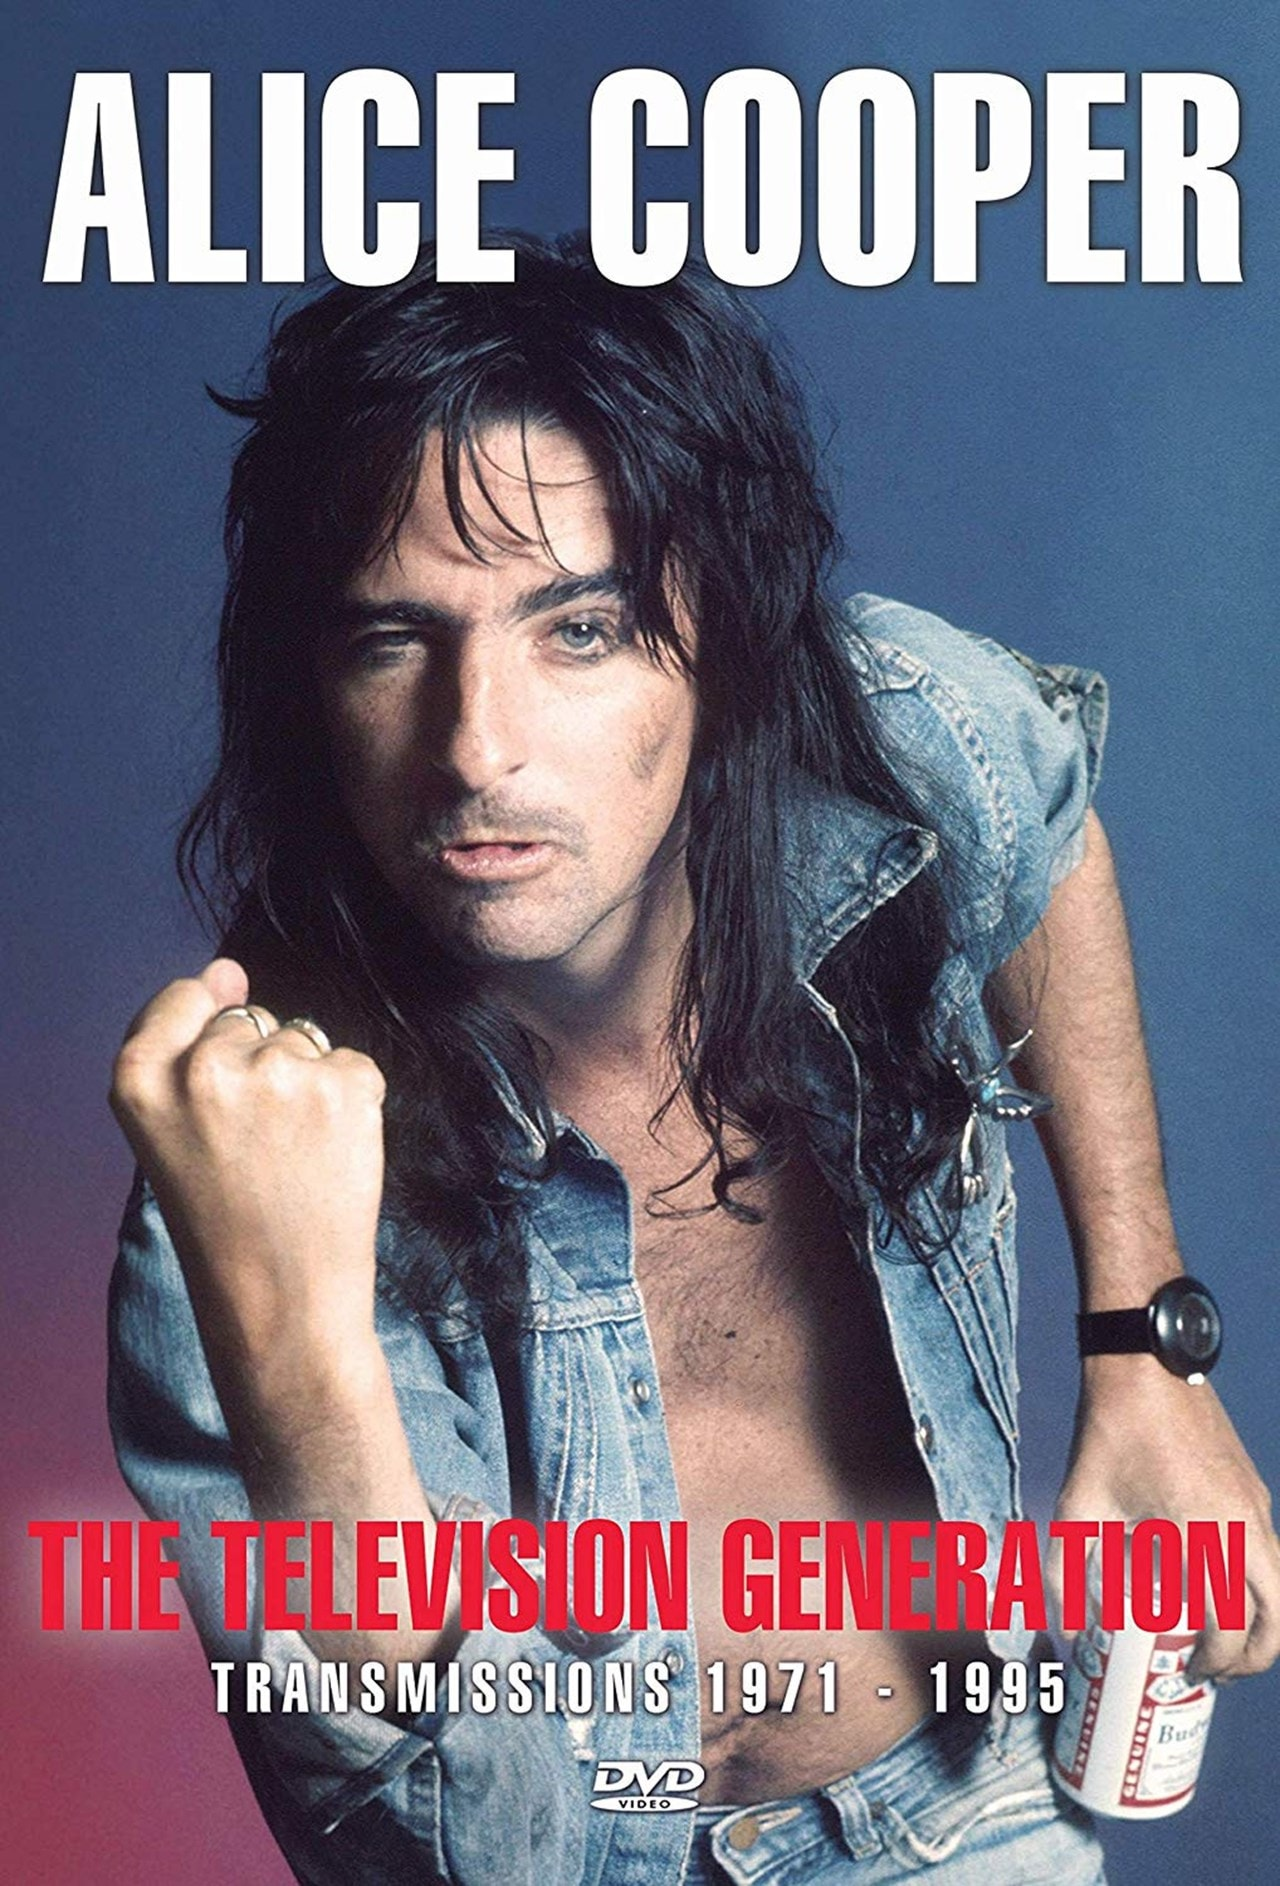 Alice Cooper: The Television Generation - 1